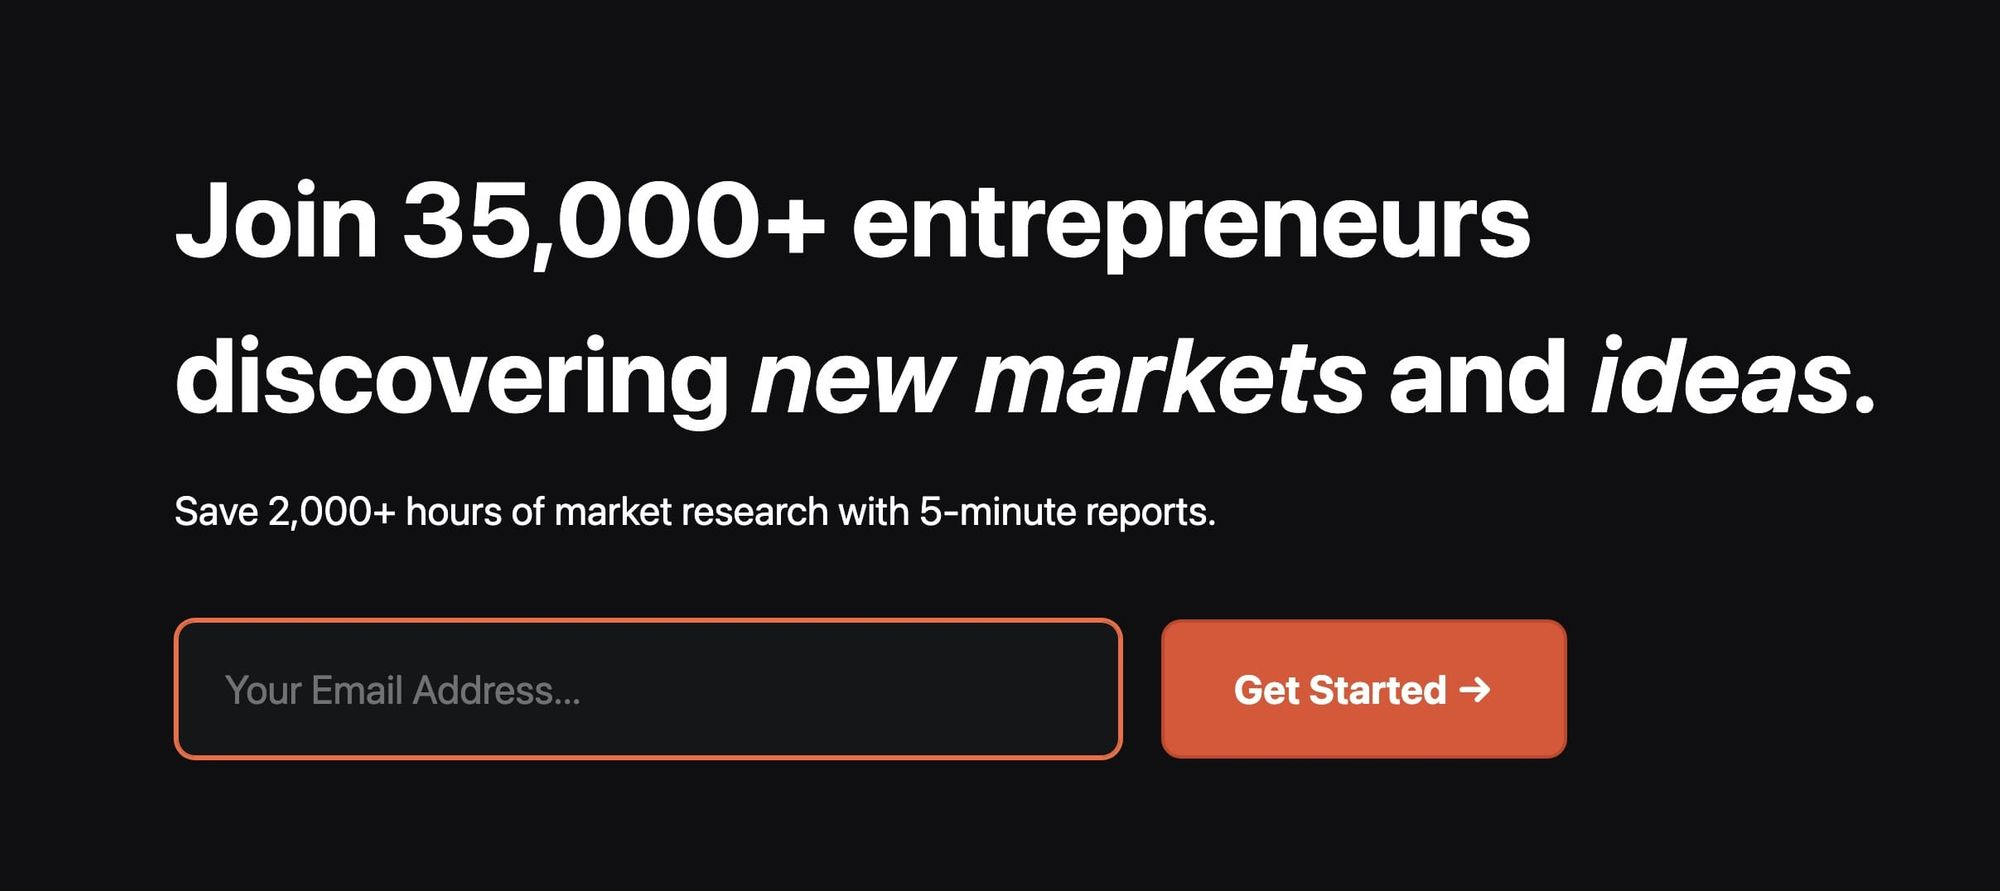 Trends.vc stating a subscription will save the reader 2,000+ hours of market research